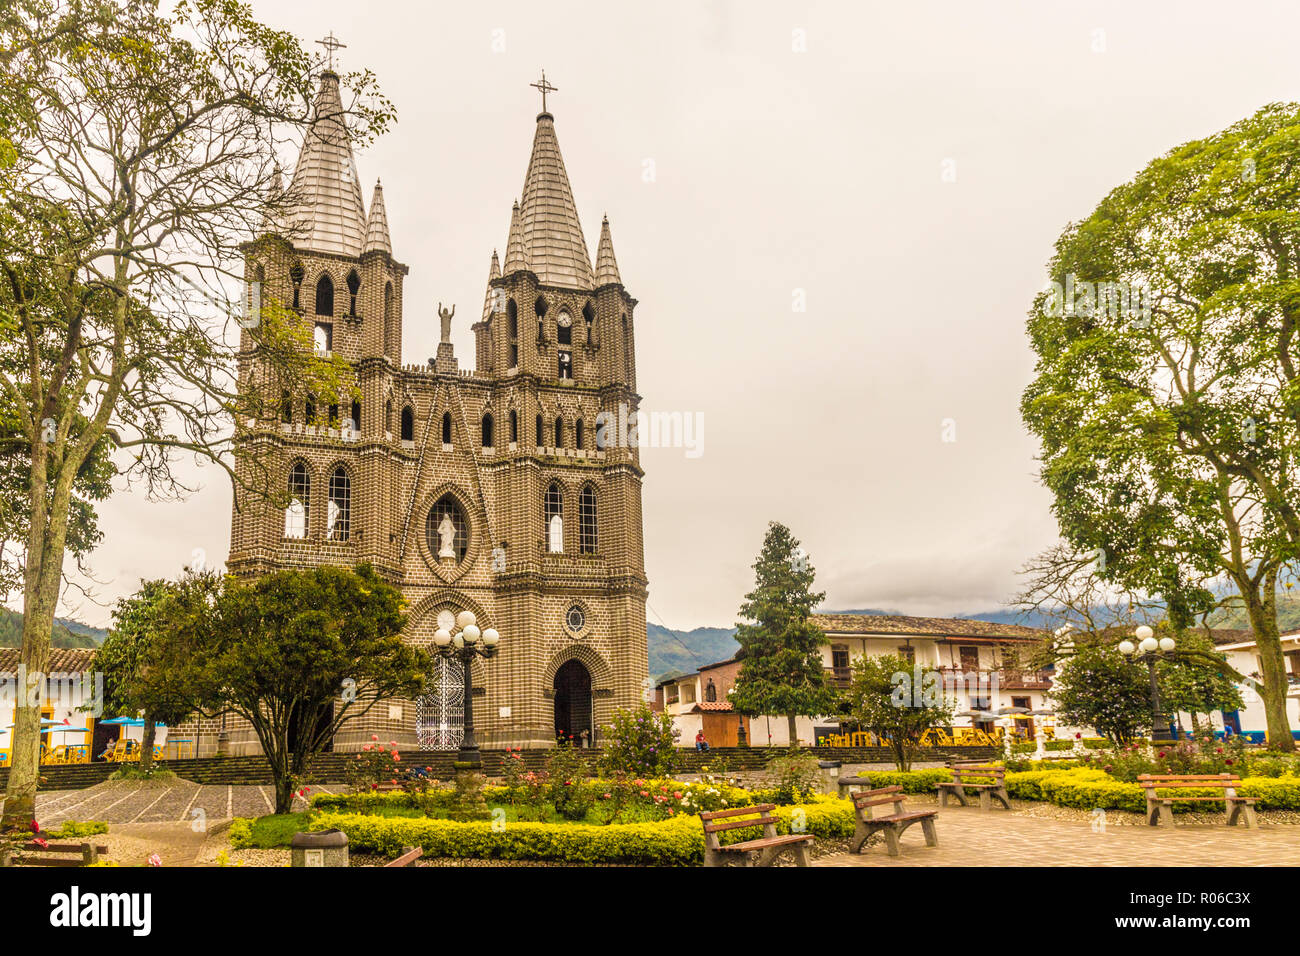 The Minor Basilica Of The Immaculate Conception Jardin Colombia